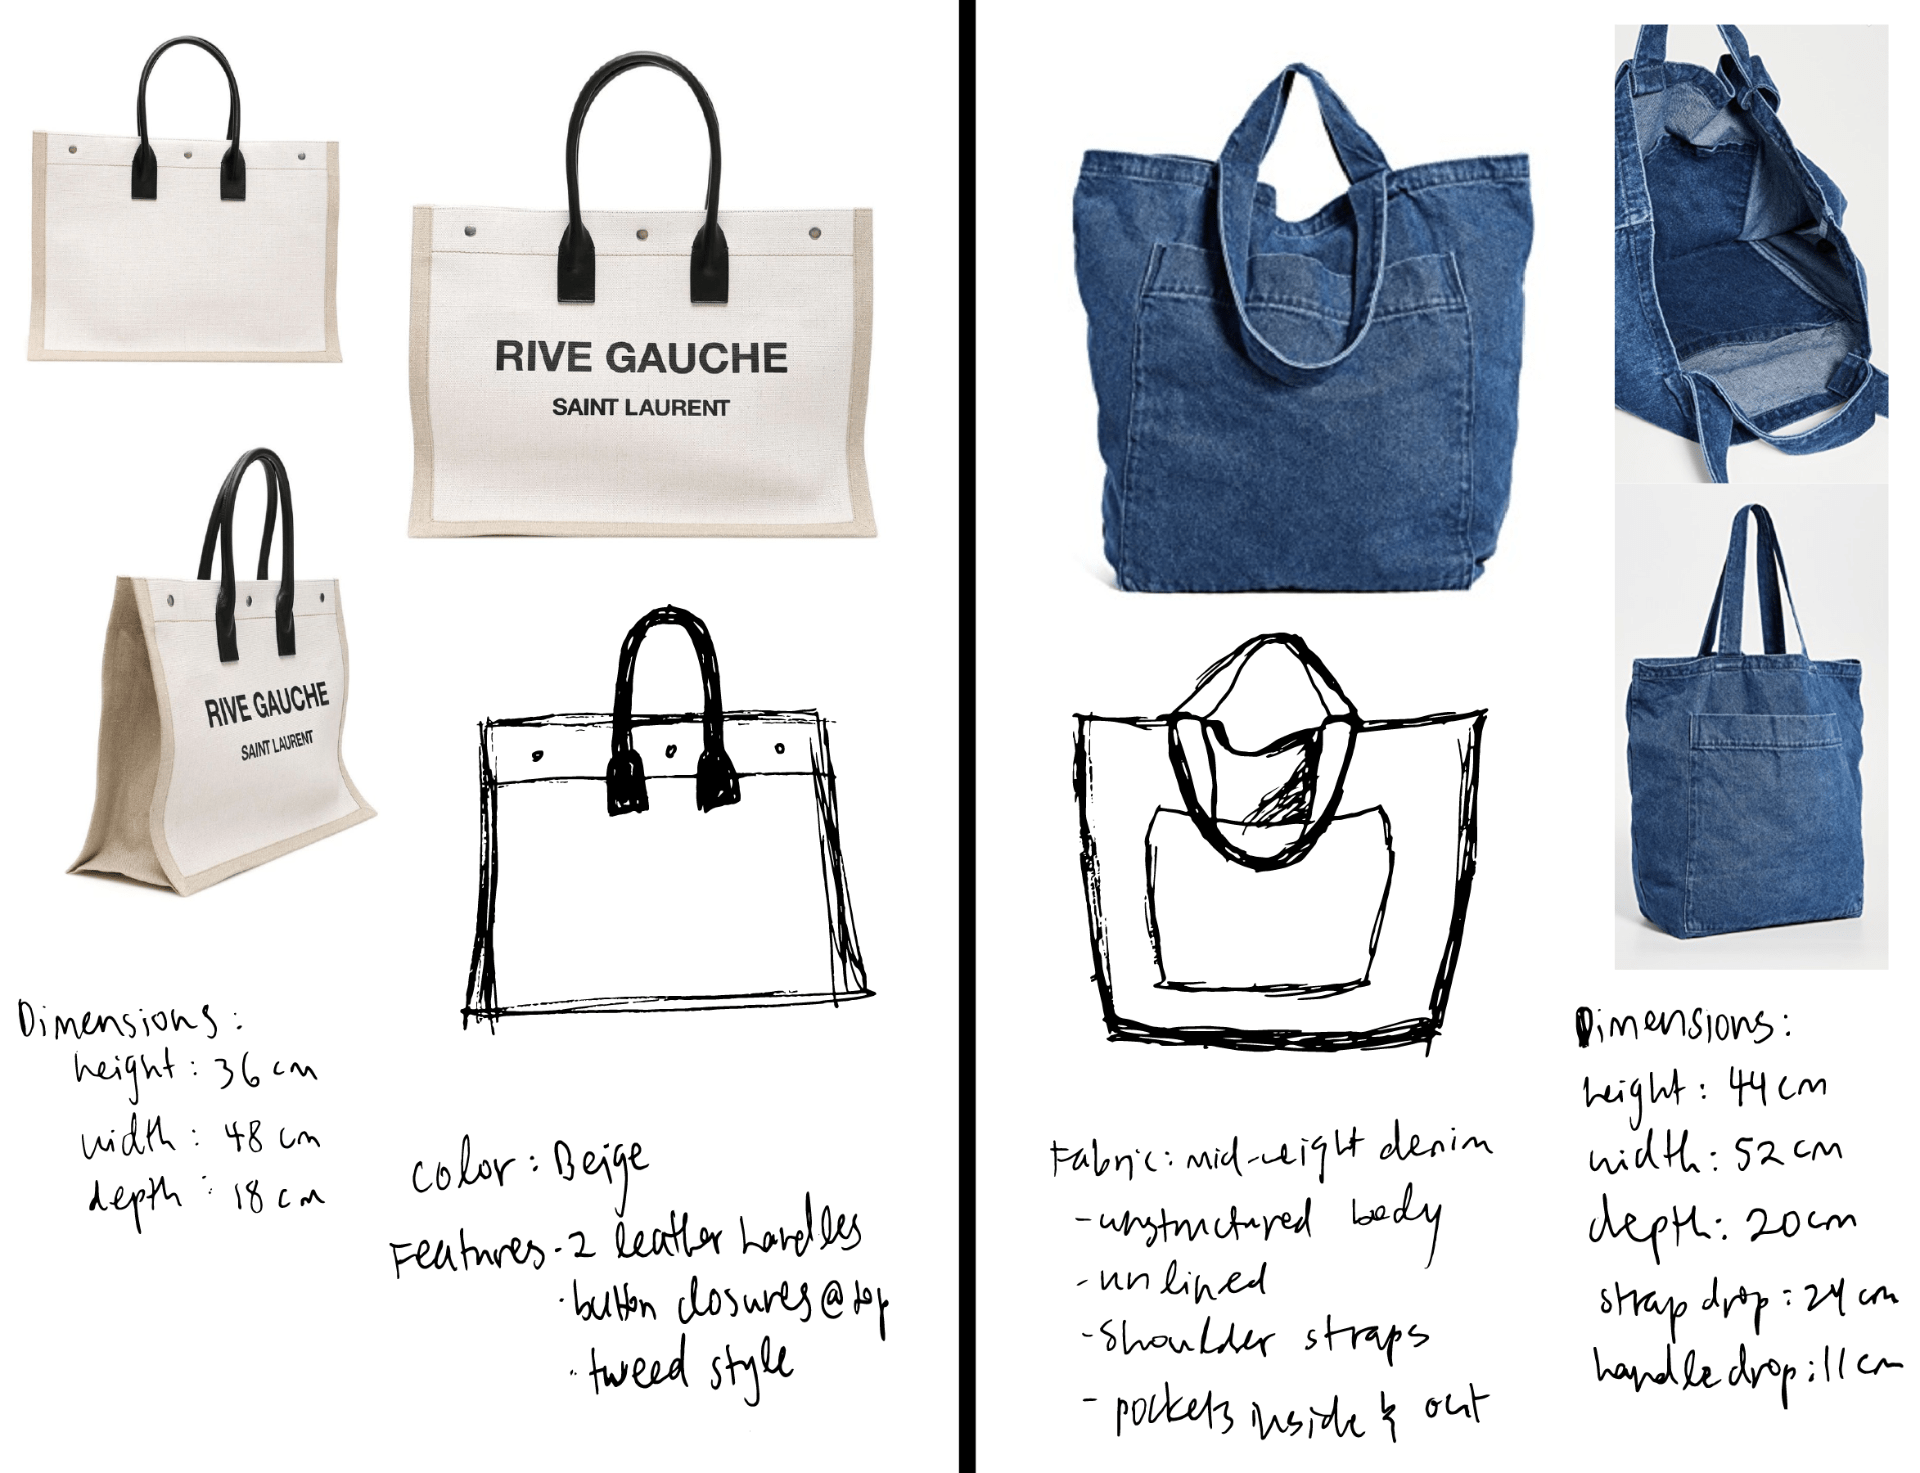 Market Research for Tote Bag Design